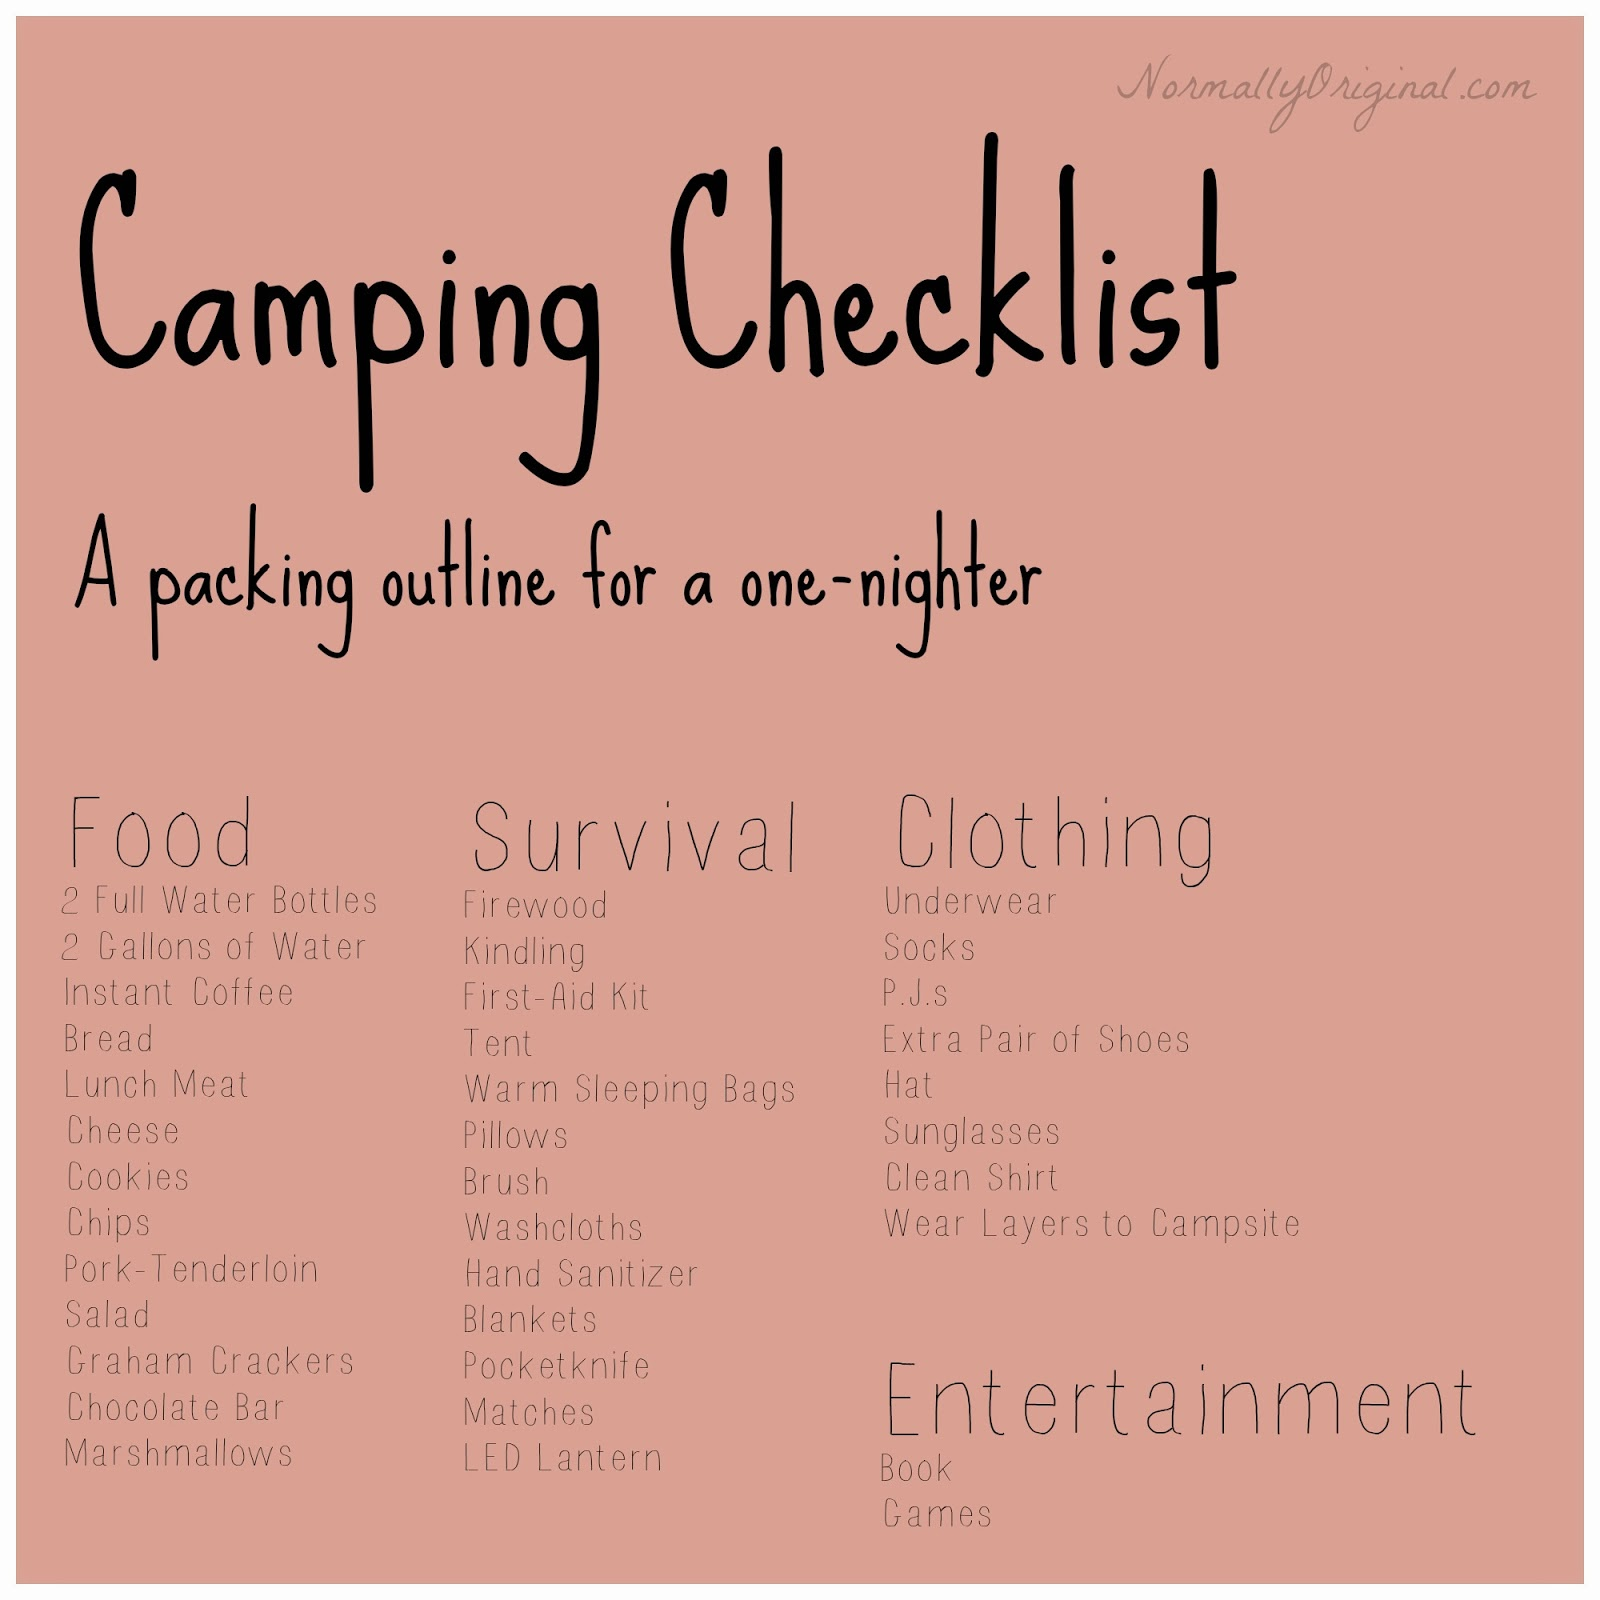 And Stepping Into REIs Backpacking Section Was More Than A Little Overwhelming So Here You Are The Basic One Night Car Camping Check List For Two